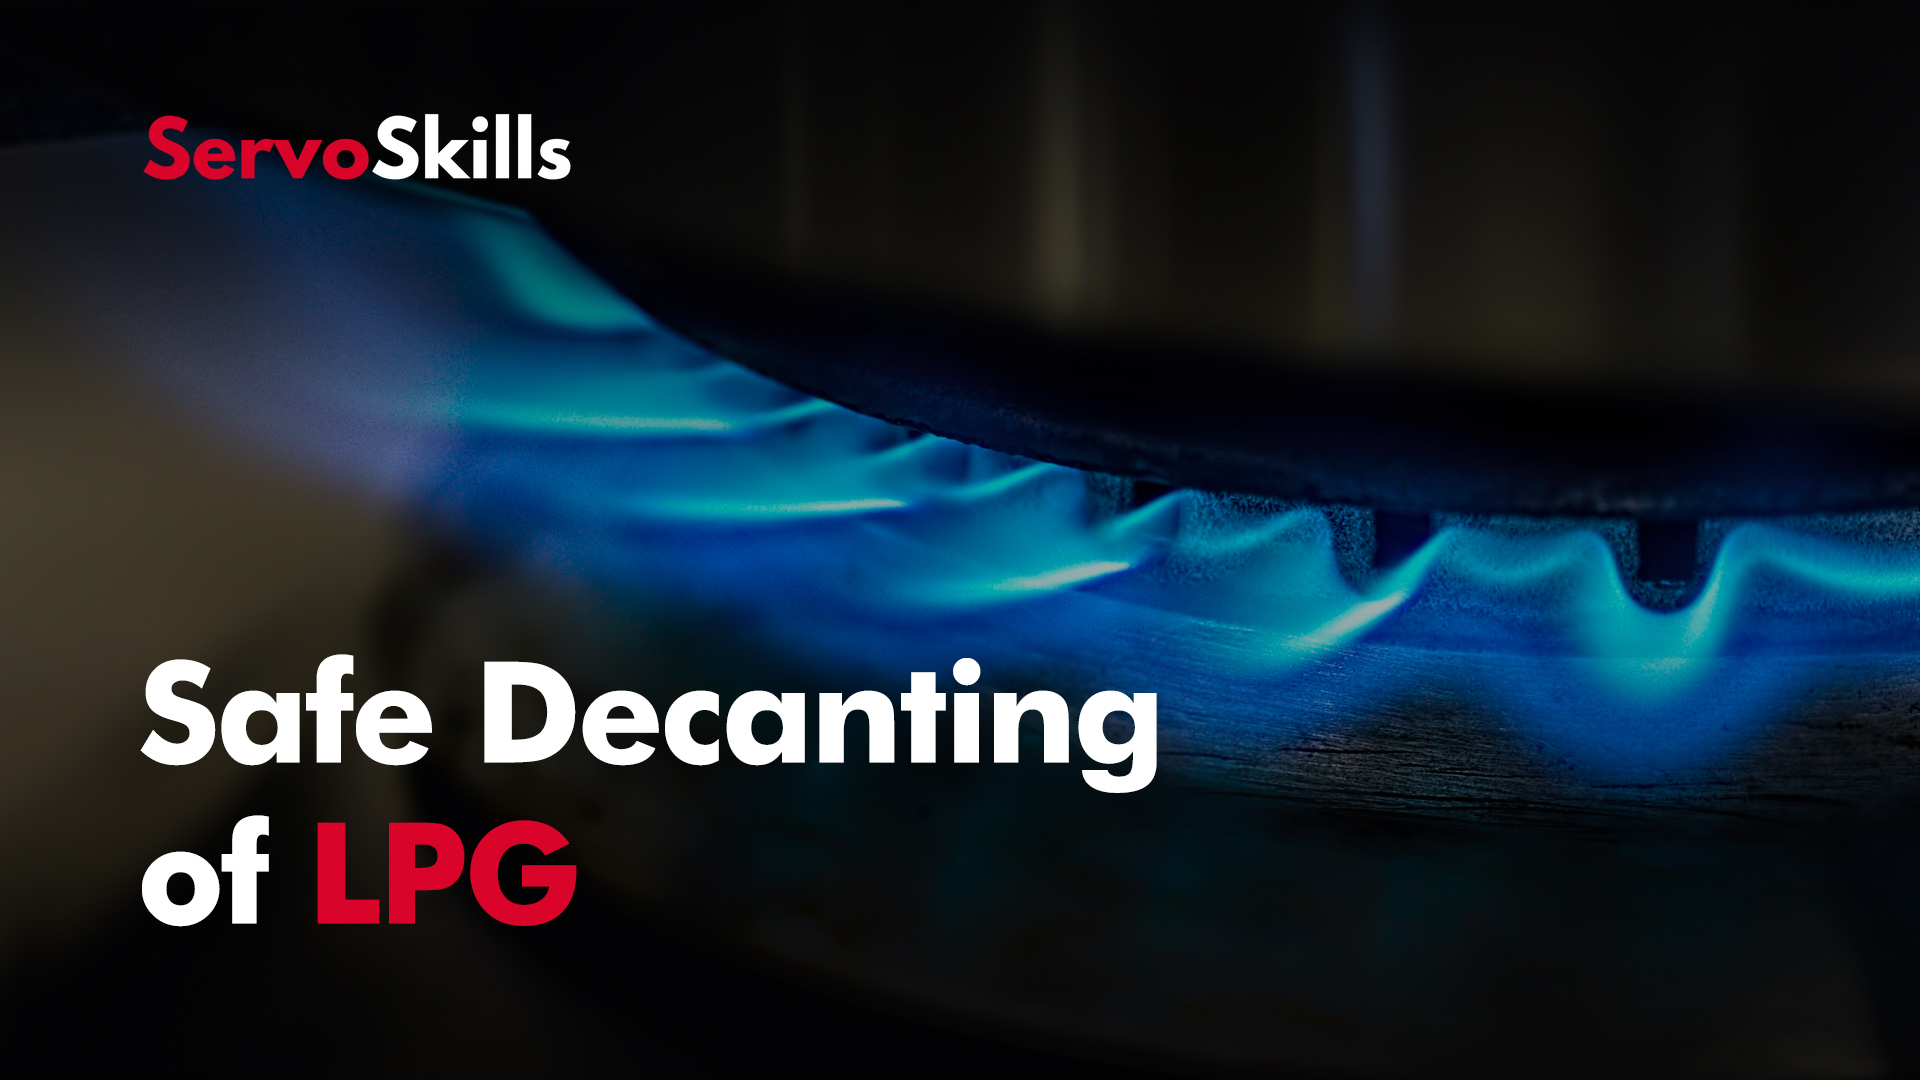 Safe Decanting of LPG